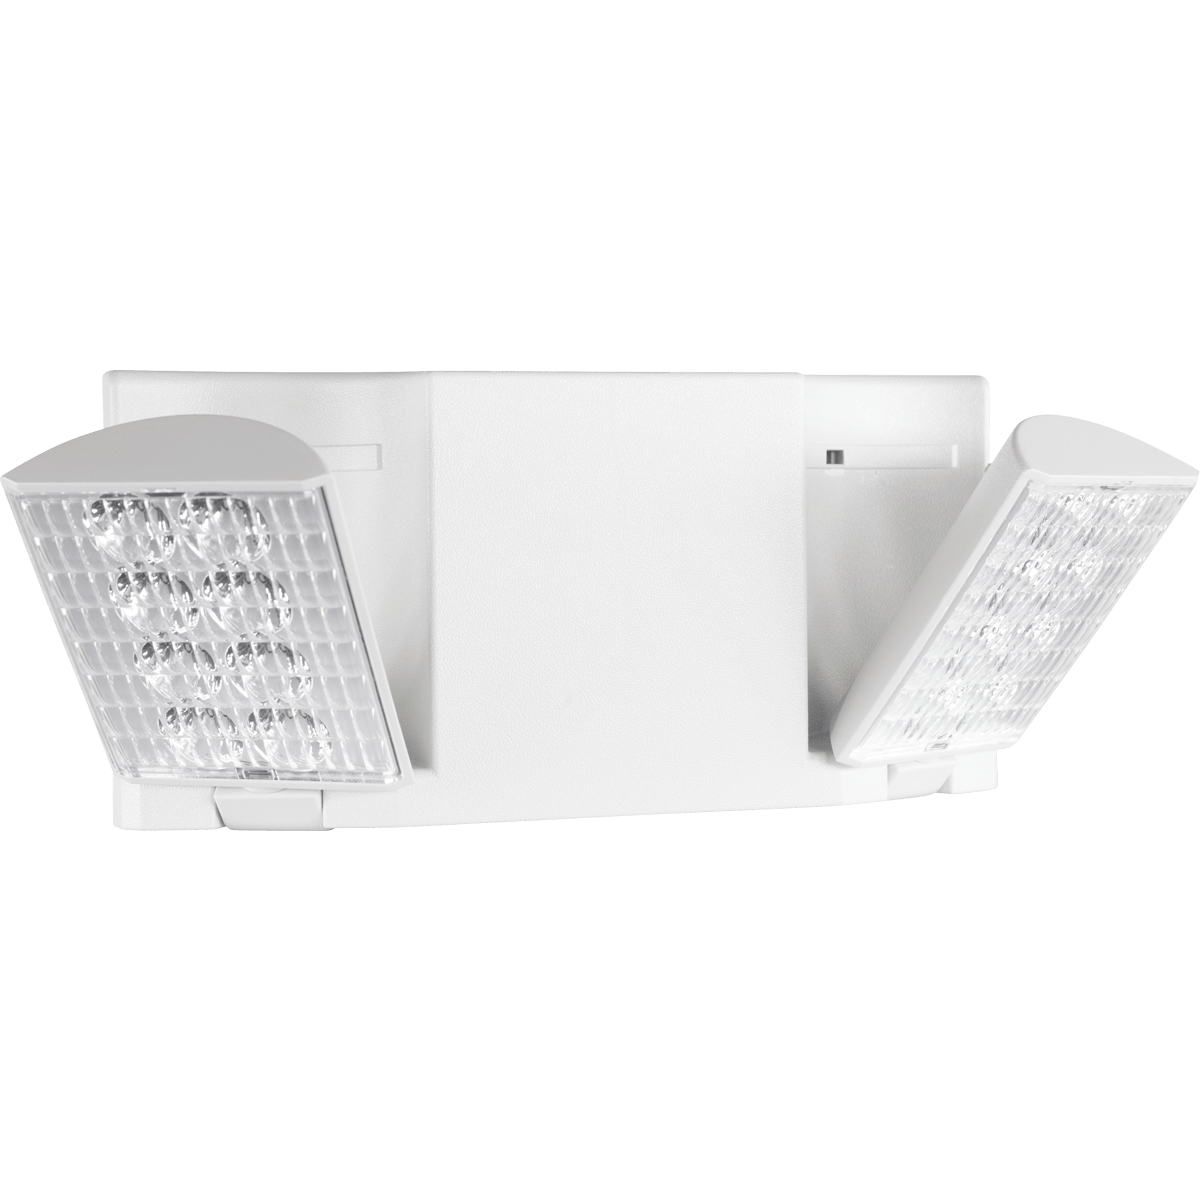 Adjustable Optics LED Emergency Light Series : ELRTL